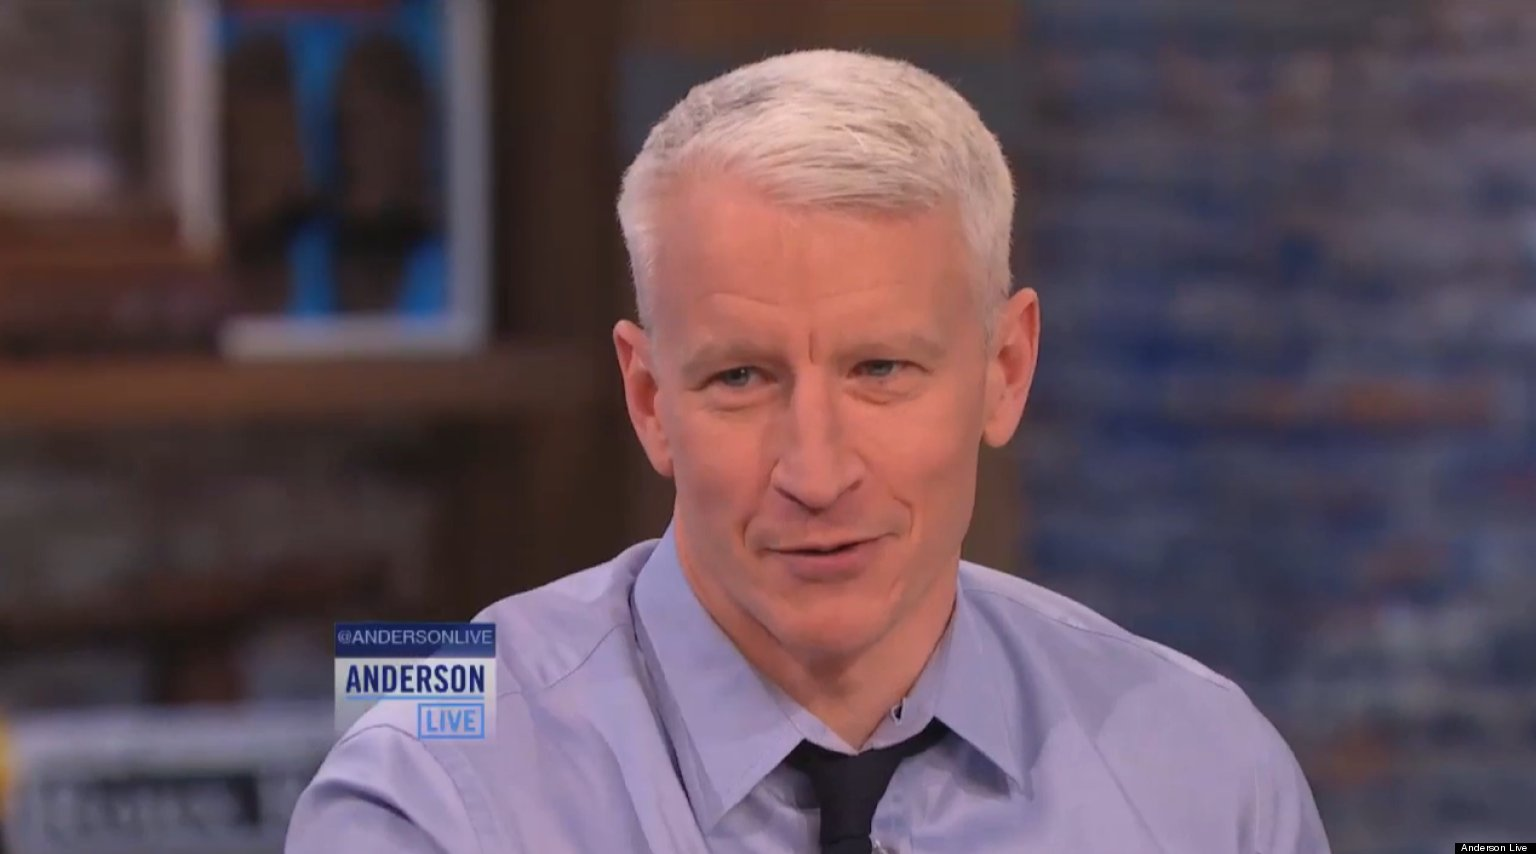 WATCH: Anderson Cooper Reveals Childhood Crush